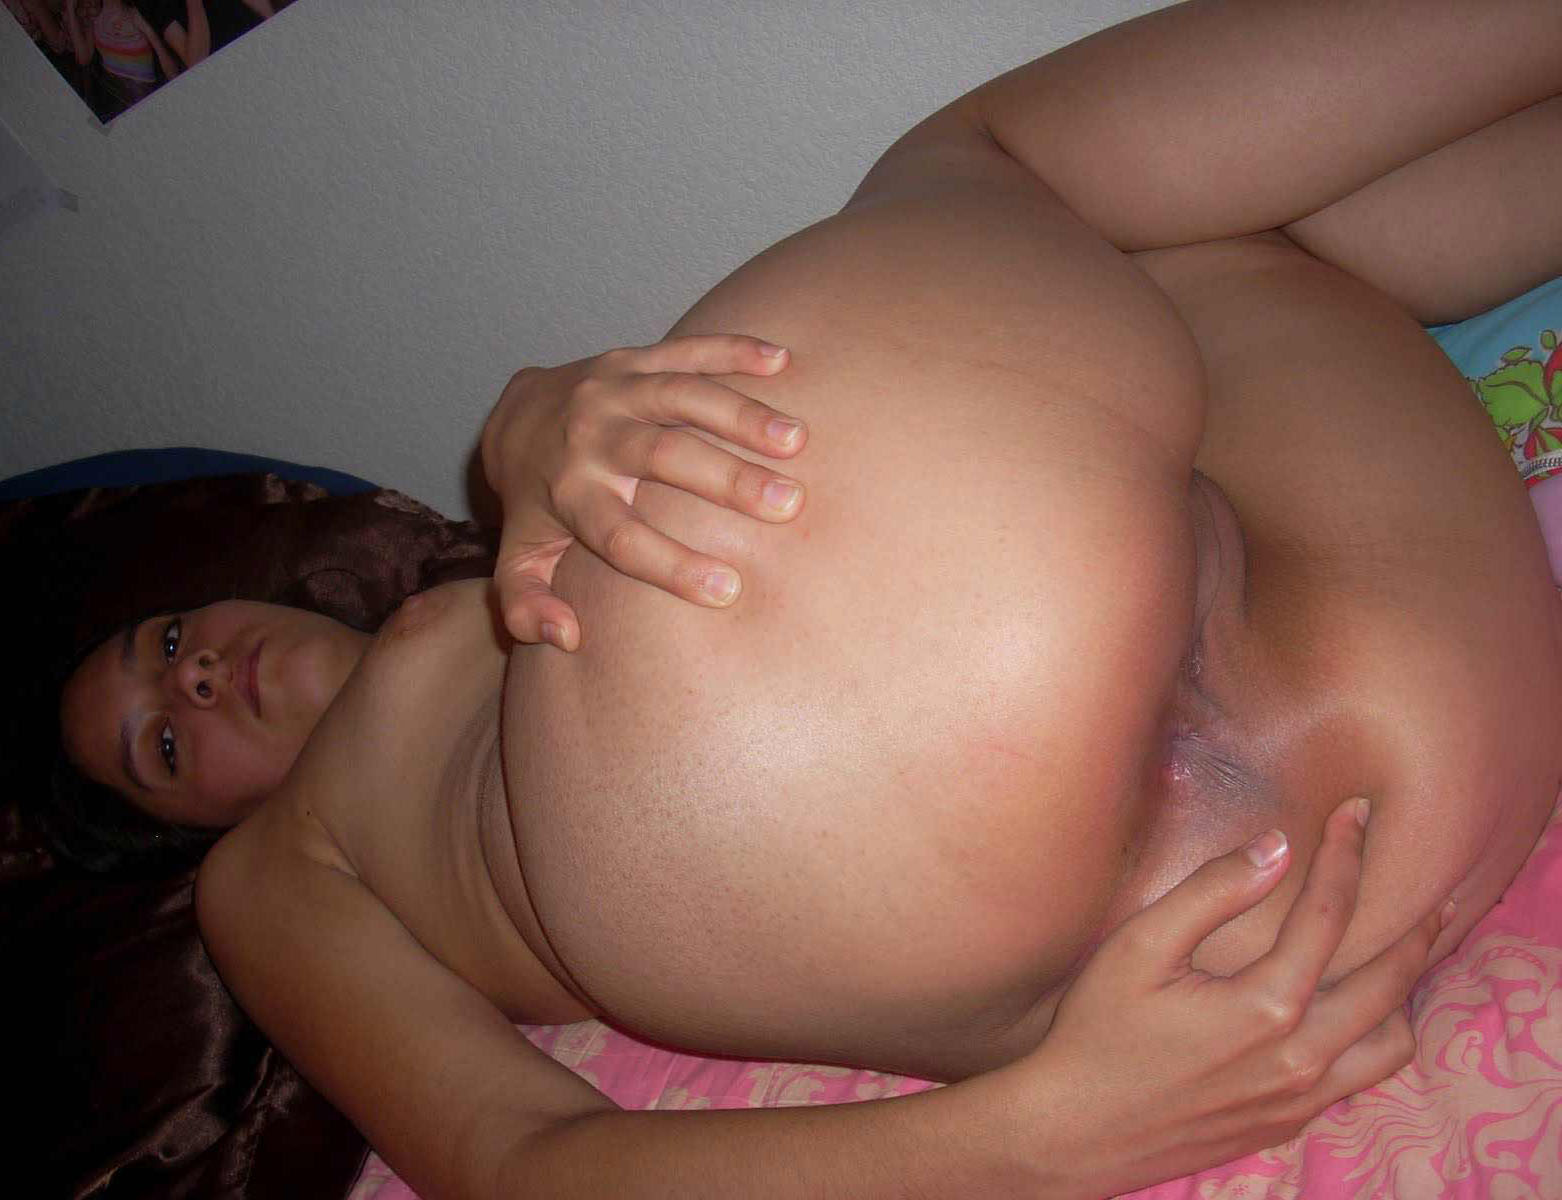 Big Round Ass Porn huge big round ass xxx hip sex porn | big boobs is sexy